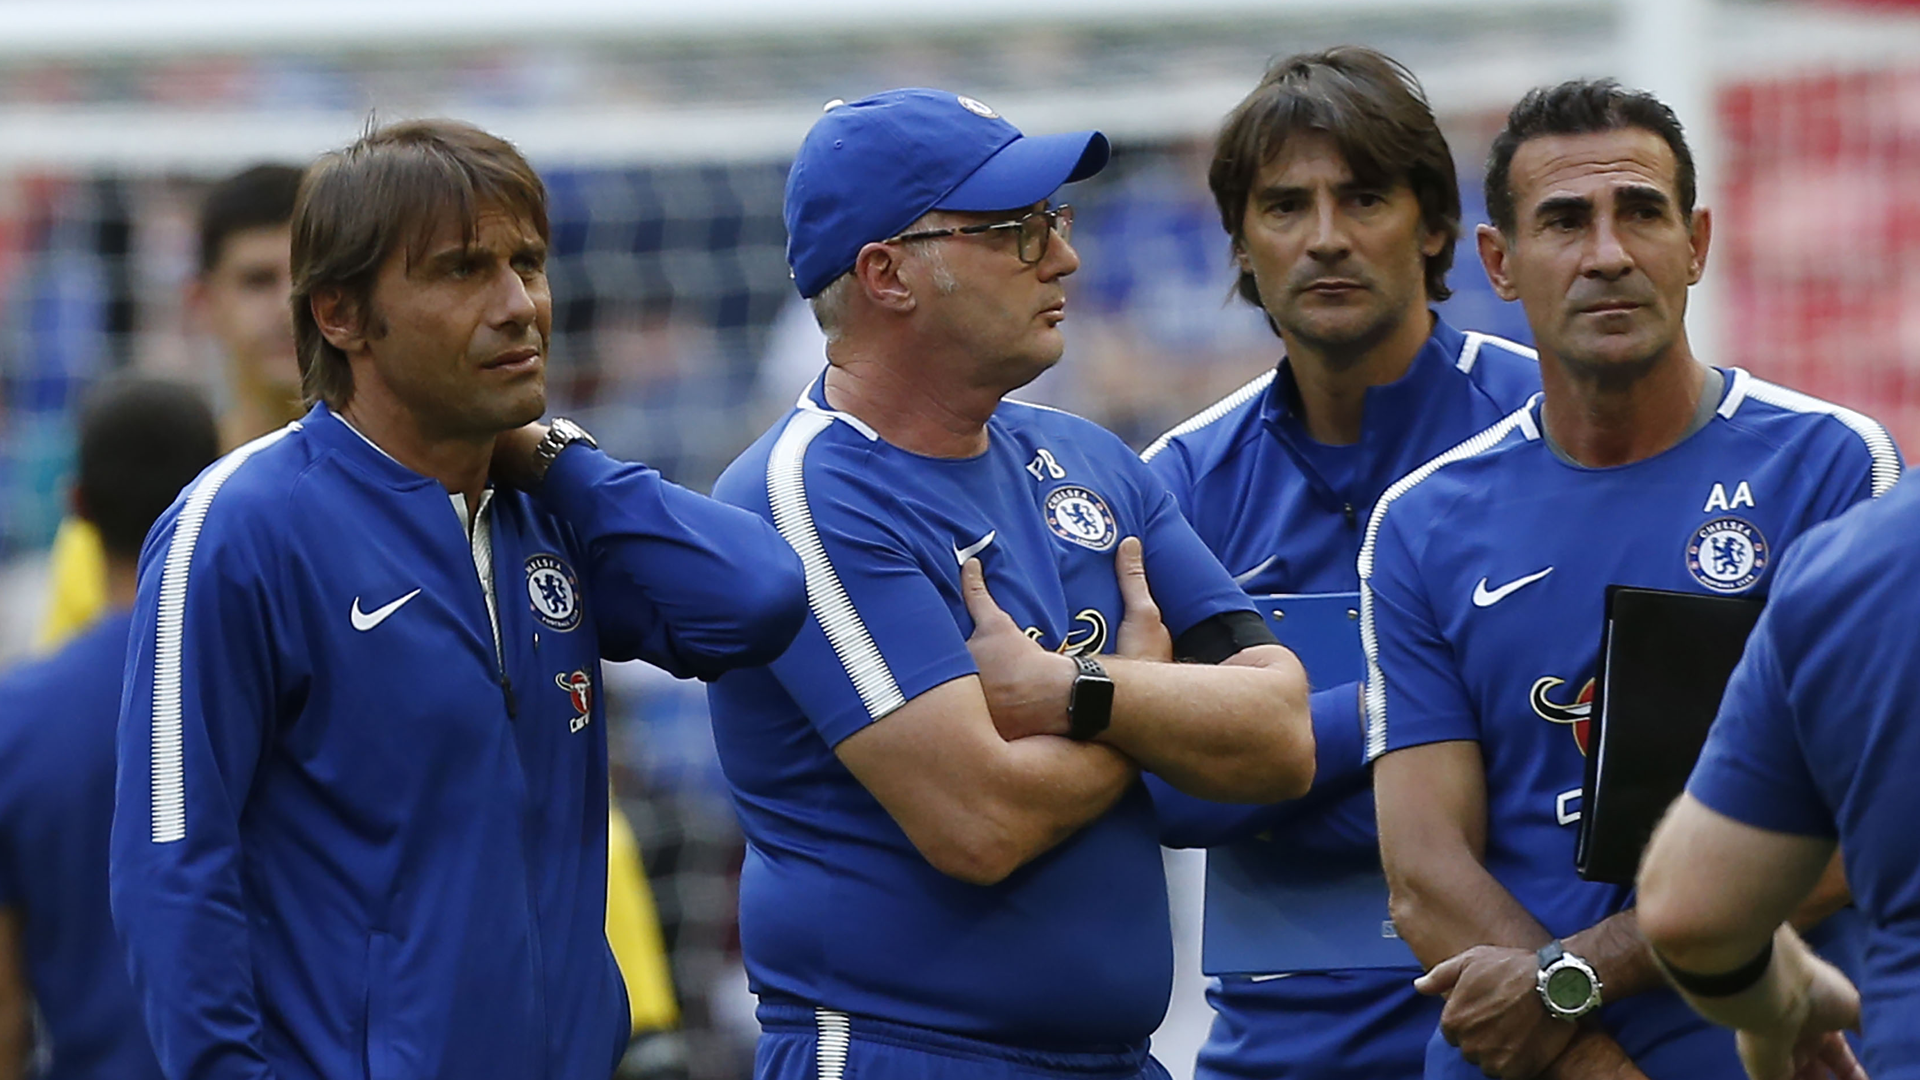 Antonio Conte frustrated as Chelsea launches title defense in EPL